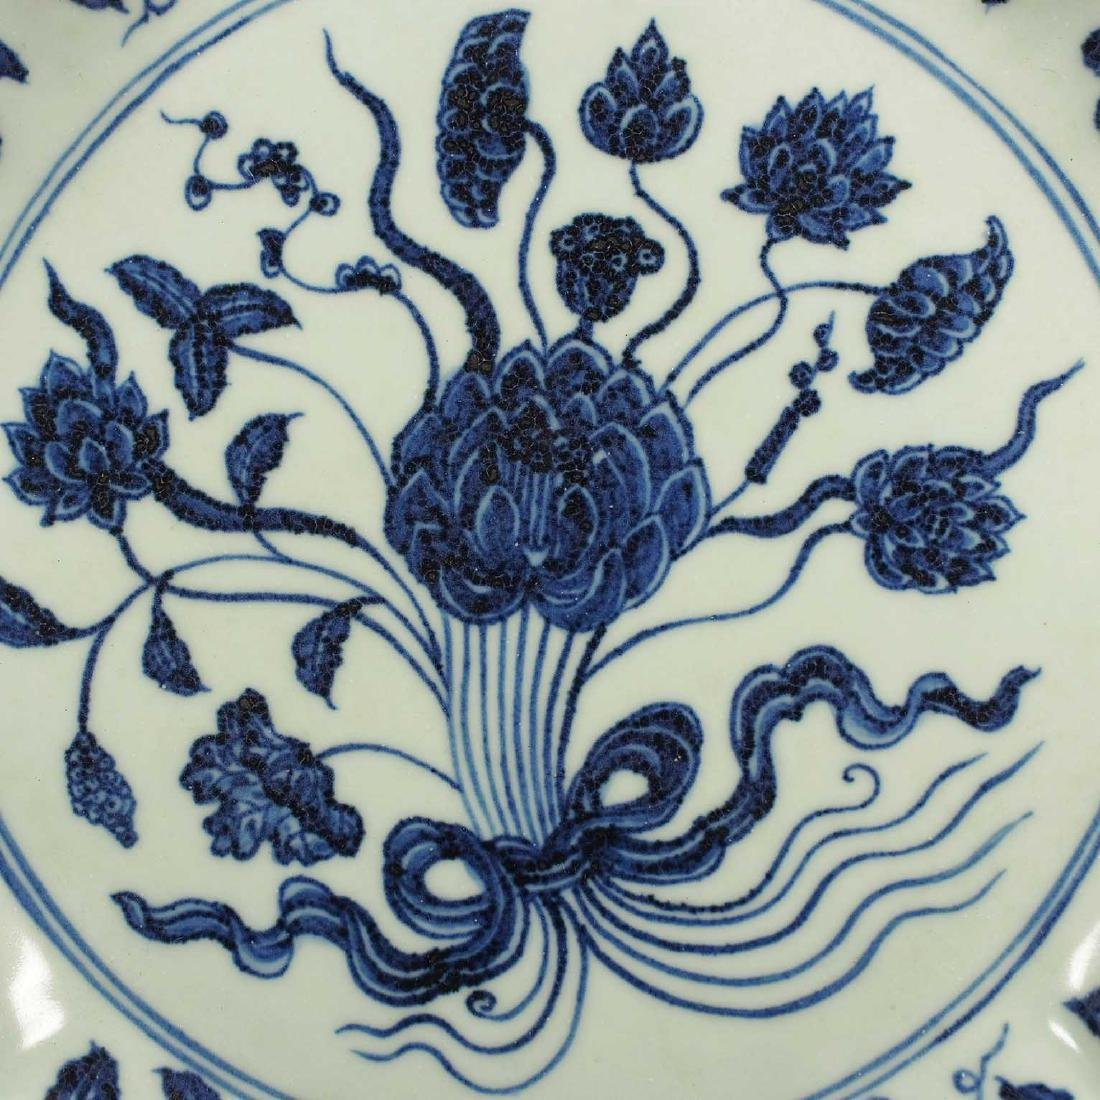 Charger with Hand-Bouquet Flowers, Yongle, Ming Dynasty - 2